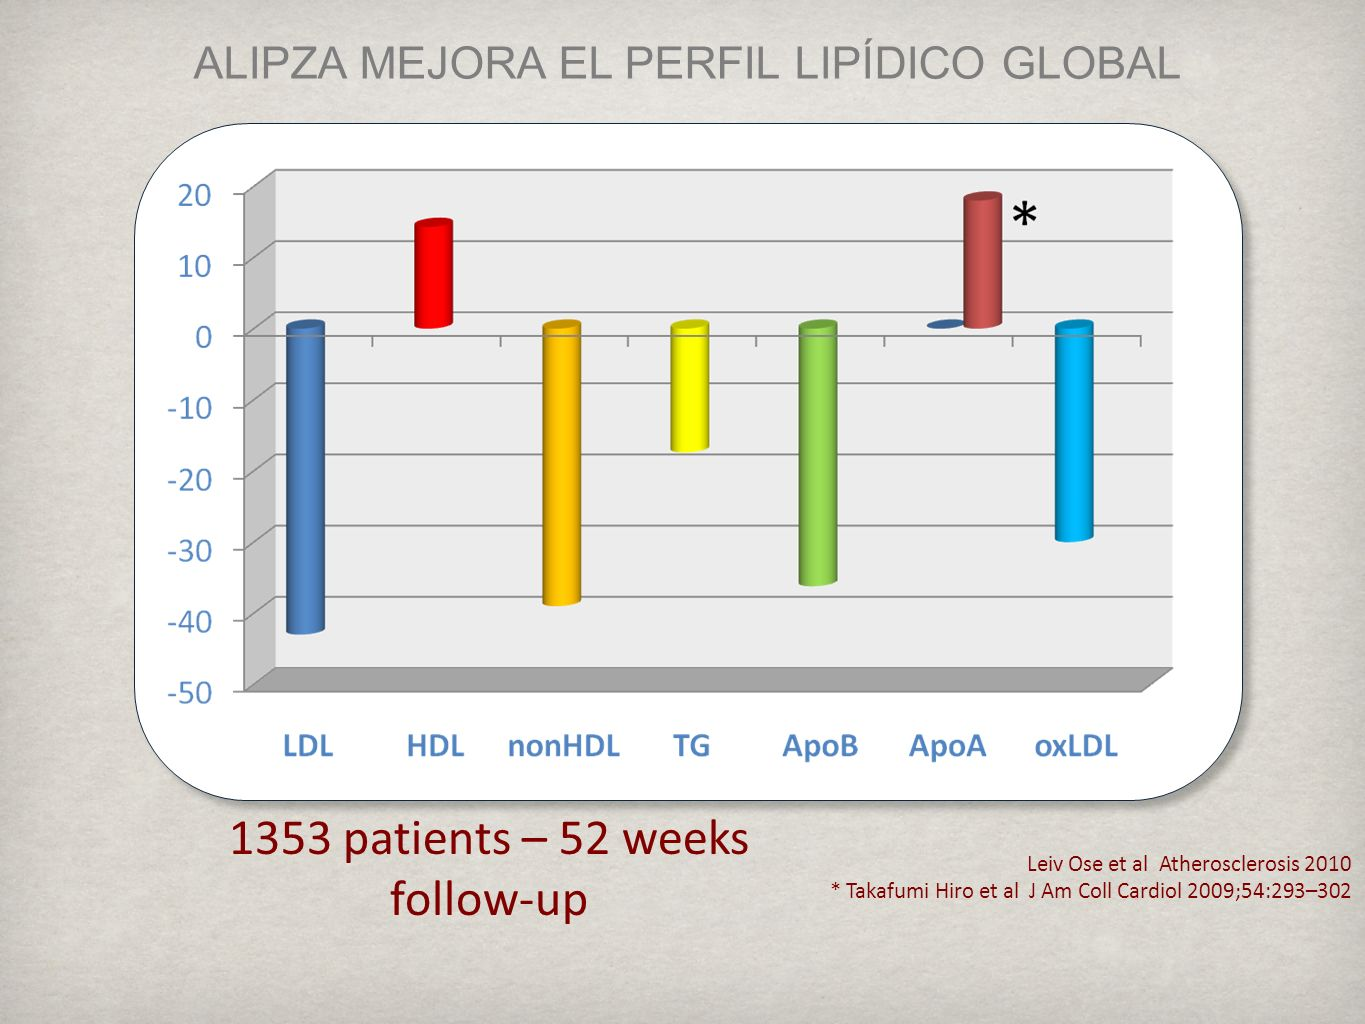 1353 patients – 52 weeks follow-up